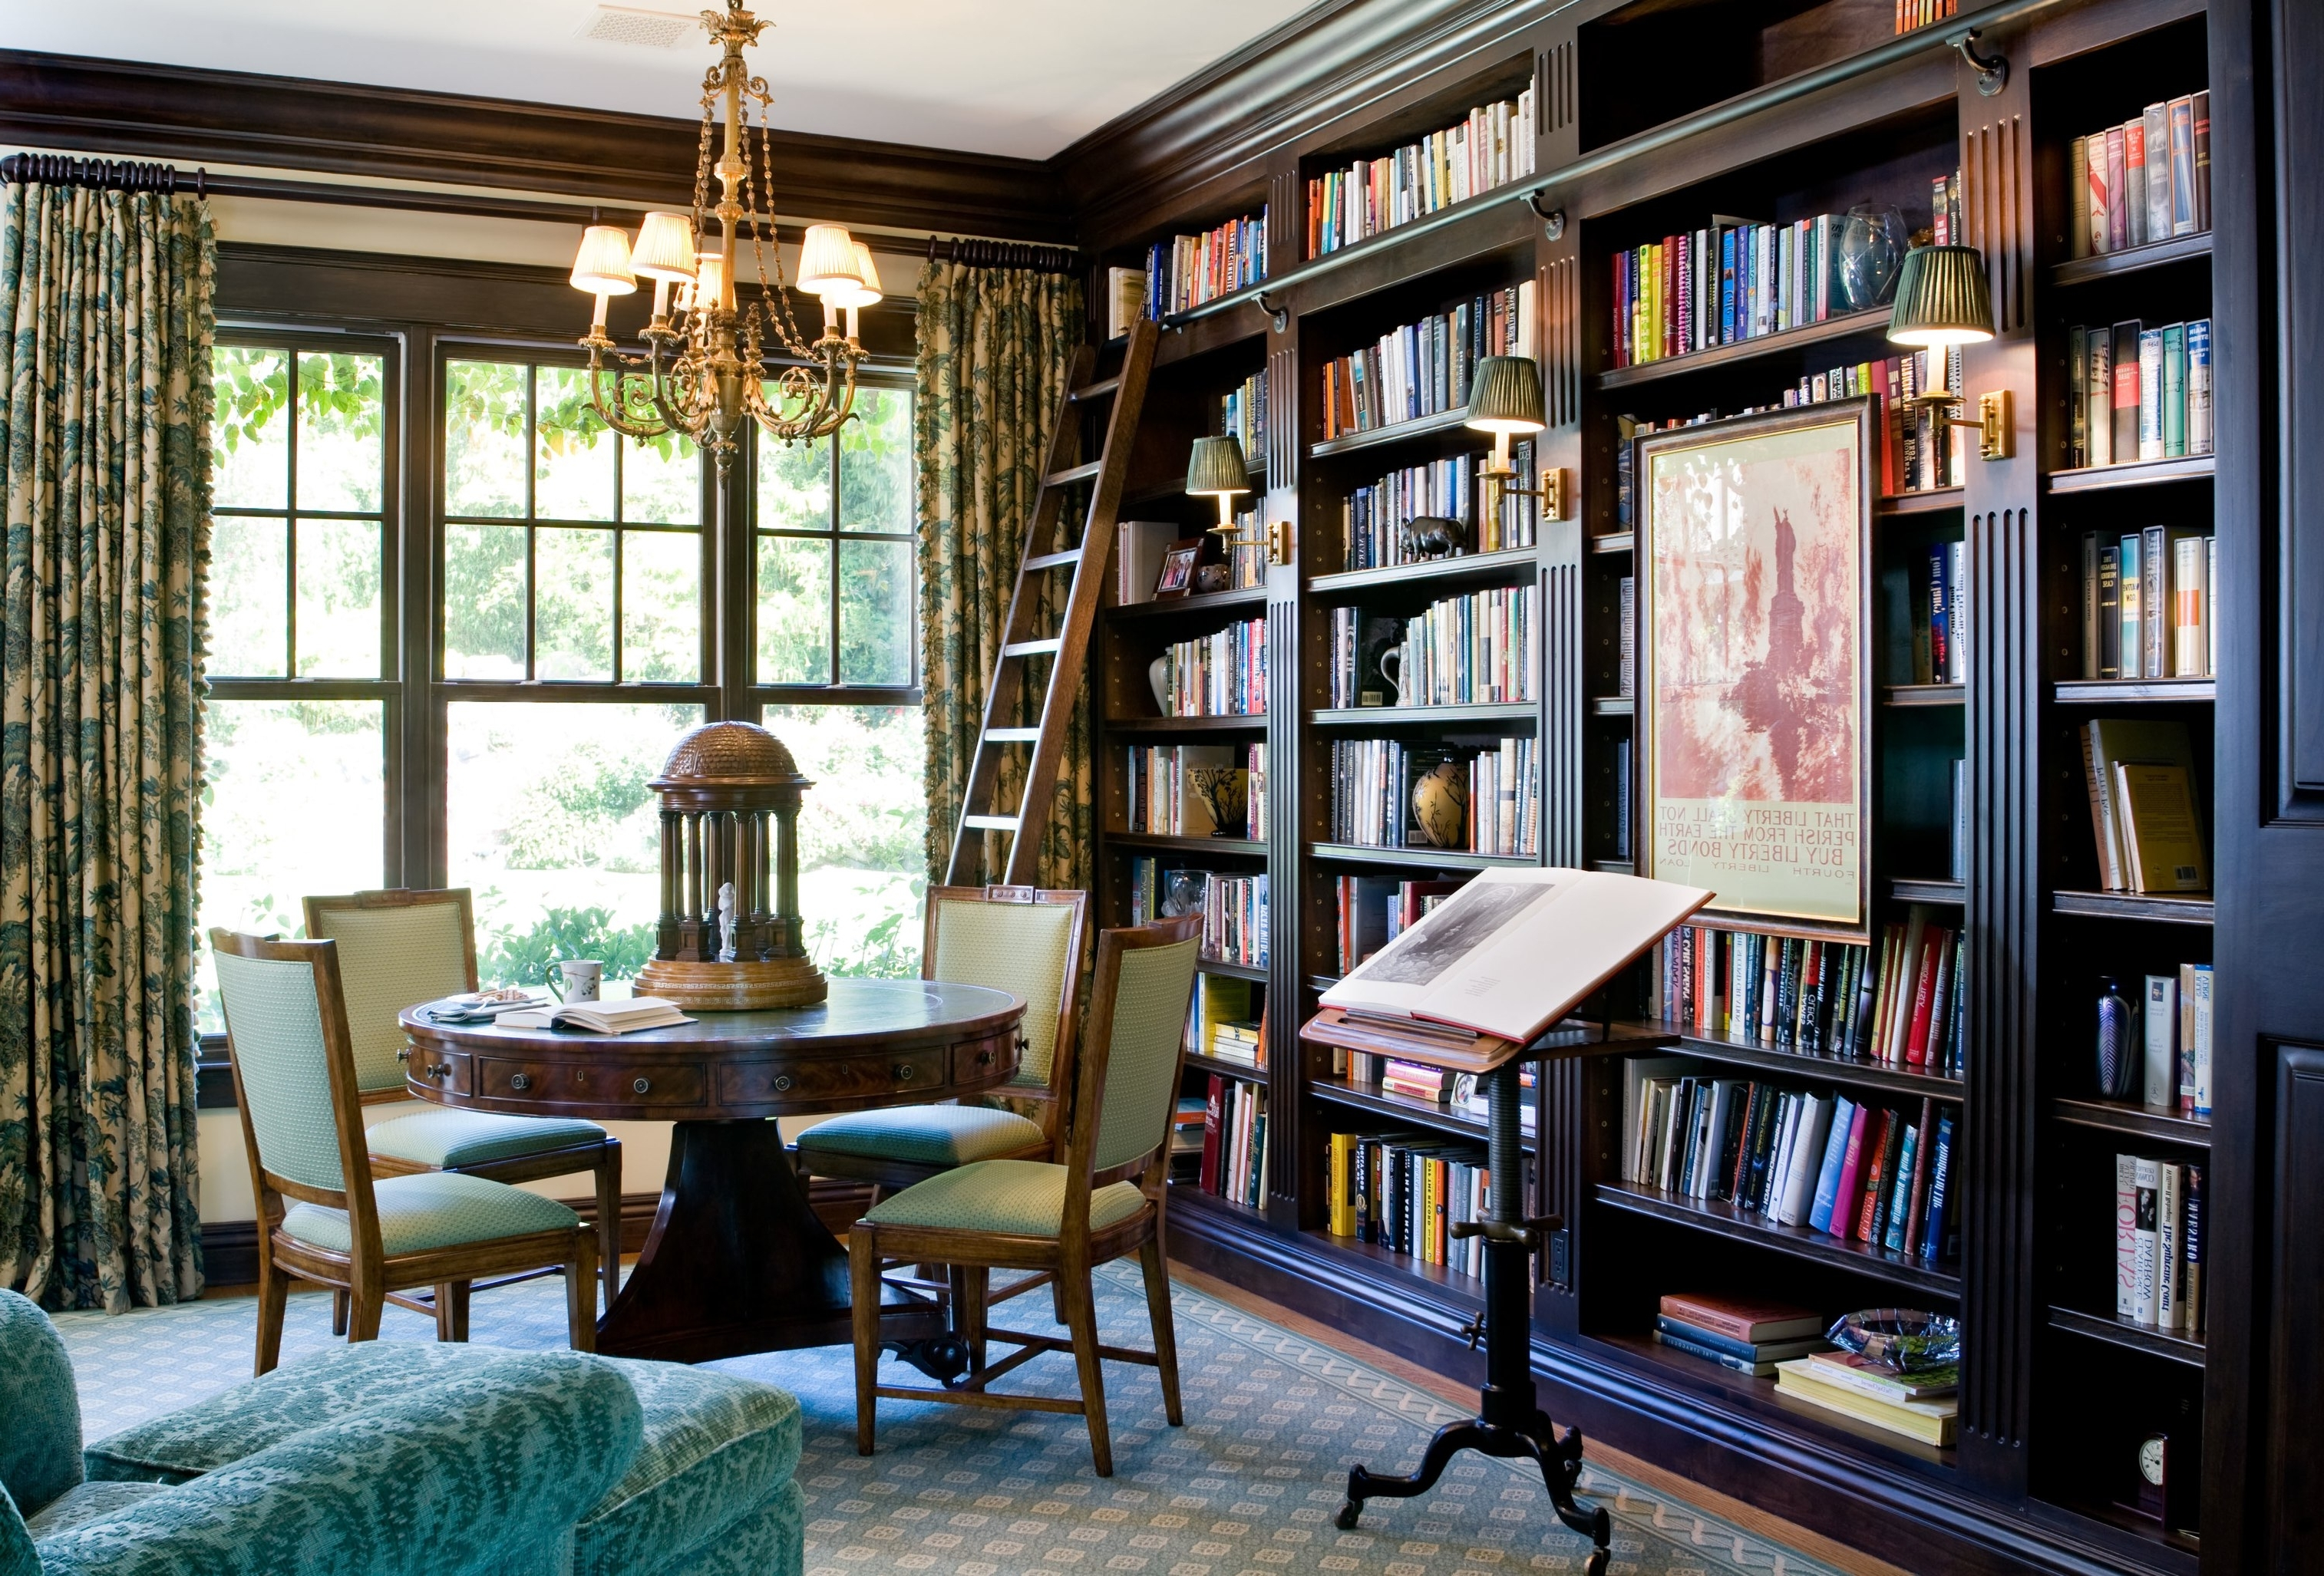 Wall Bookcases Regarding Latest Artfully Styled Bookcases (View 12 of 15)